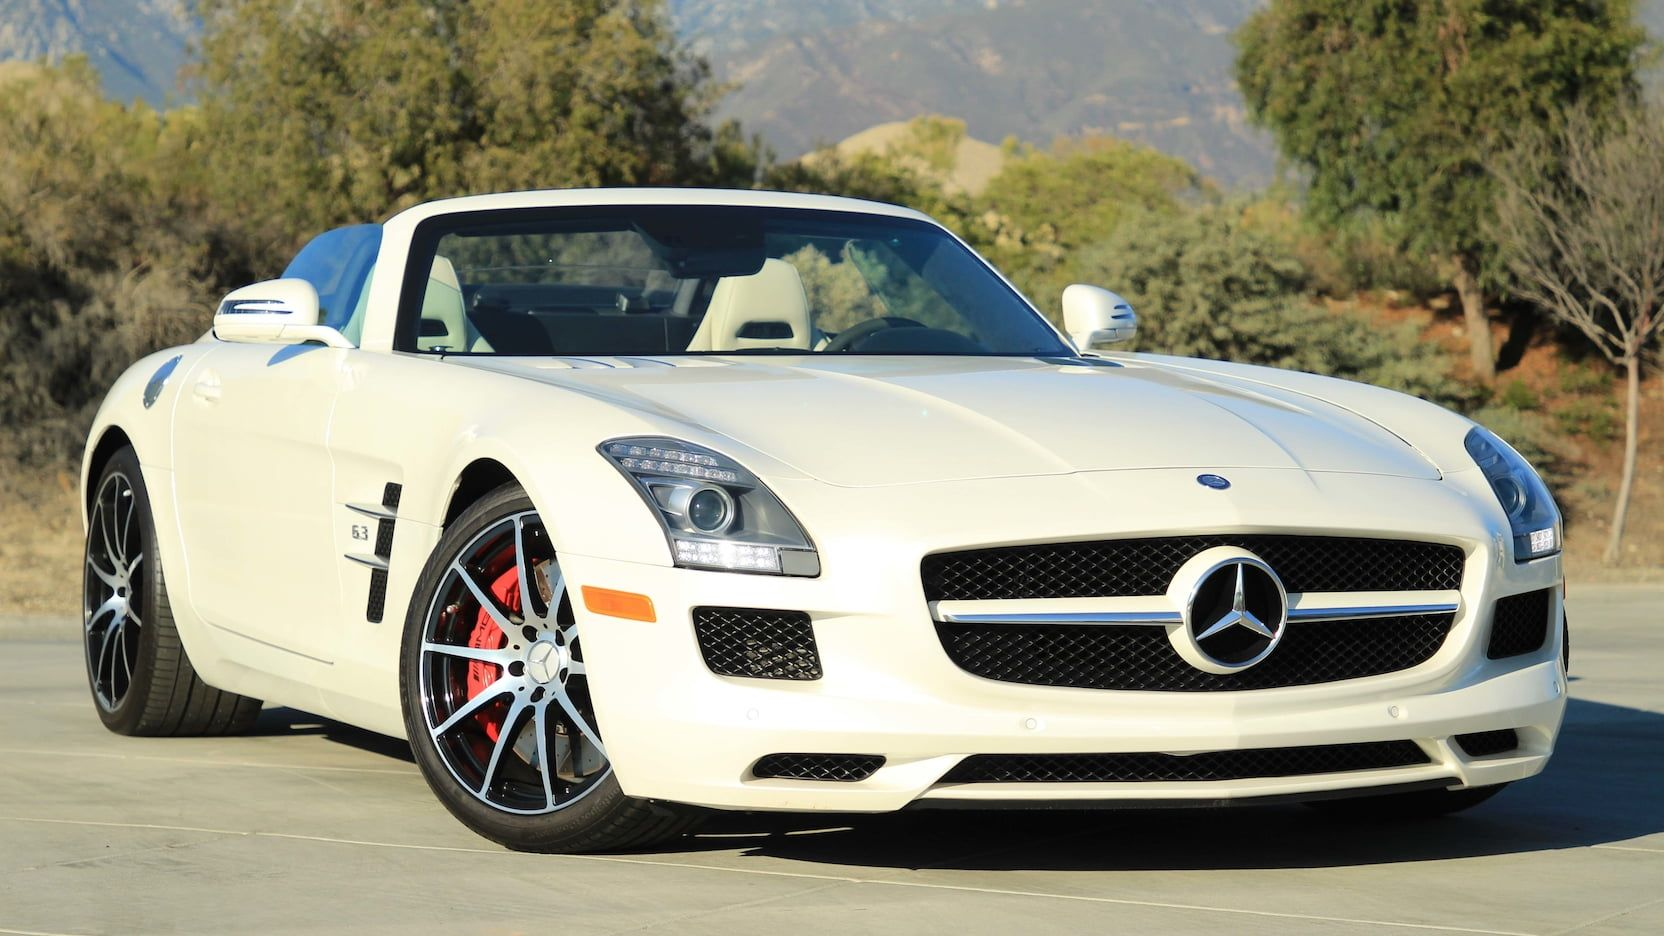 2012 Mercedes-Benz SLS AMG Roadster presented as Lot S2.1 ...